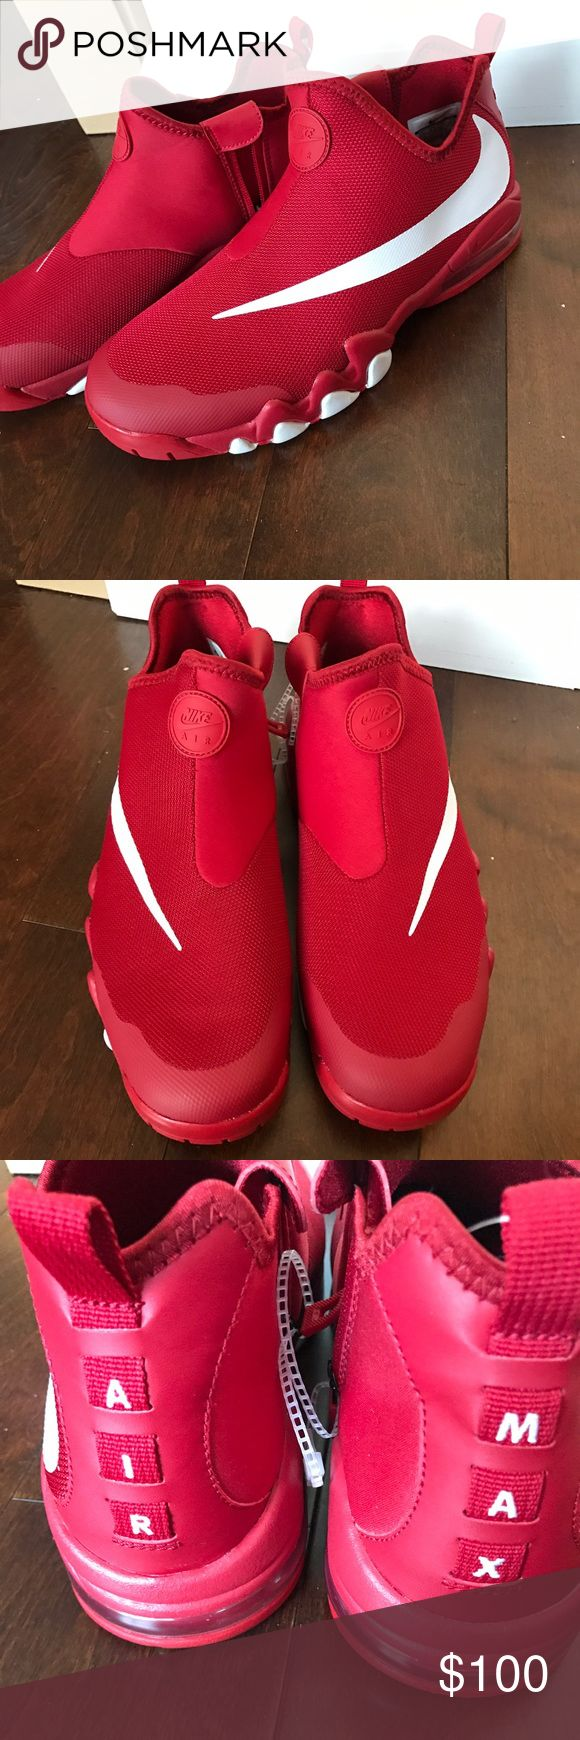 Nike air max sneakers Sz 11.5 Brand new pair of sneakers missing box. Nike Shoes Athletic Shoes